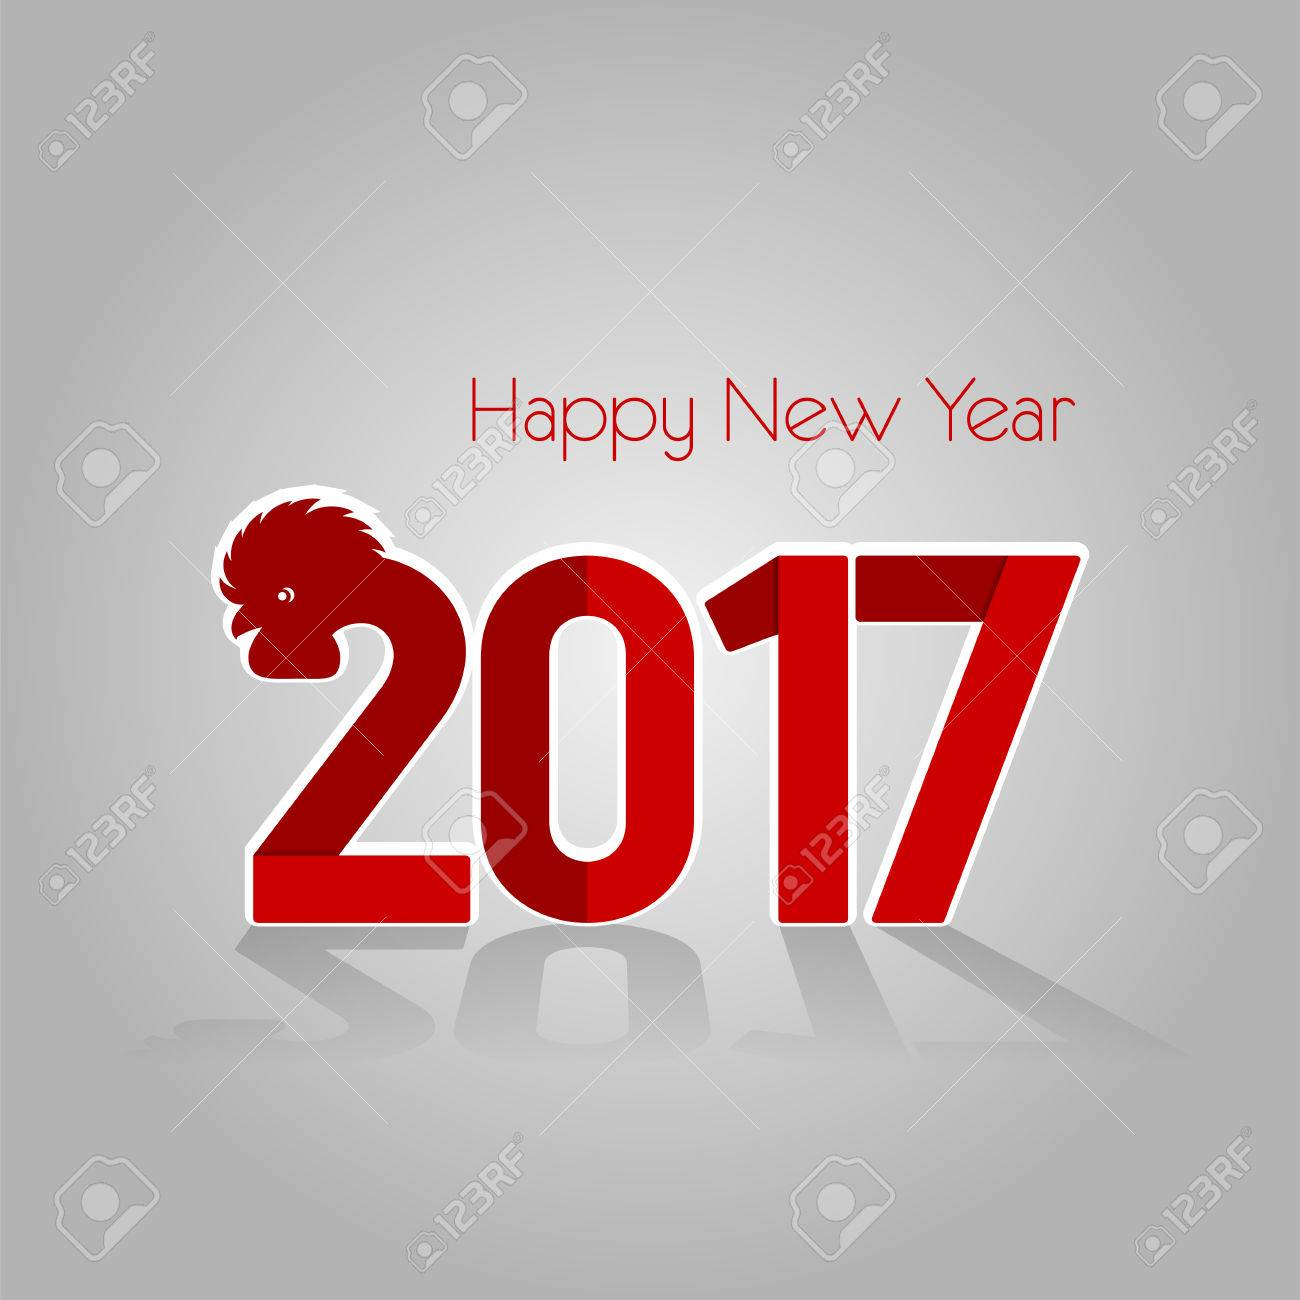 creative modern card new year red rooster 2017 chinese horoscope congratulations calligraphy and lettering stock